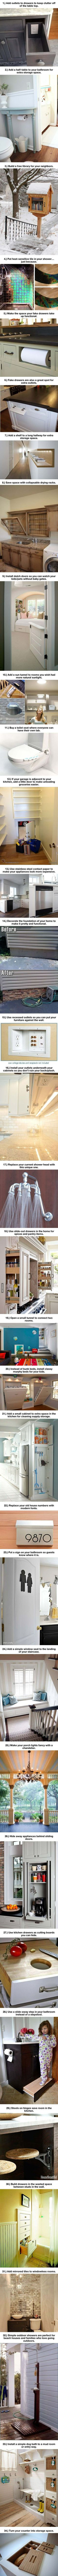 34 Relatively Simple Things That Will Make Your Home Extremely Awesome | Life in Colors